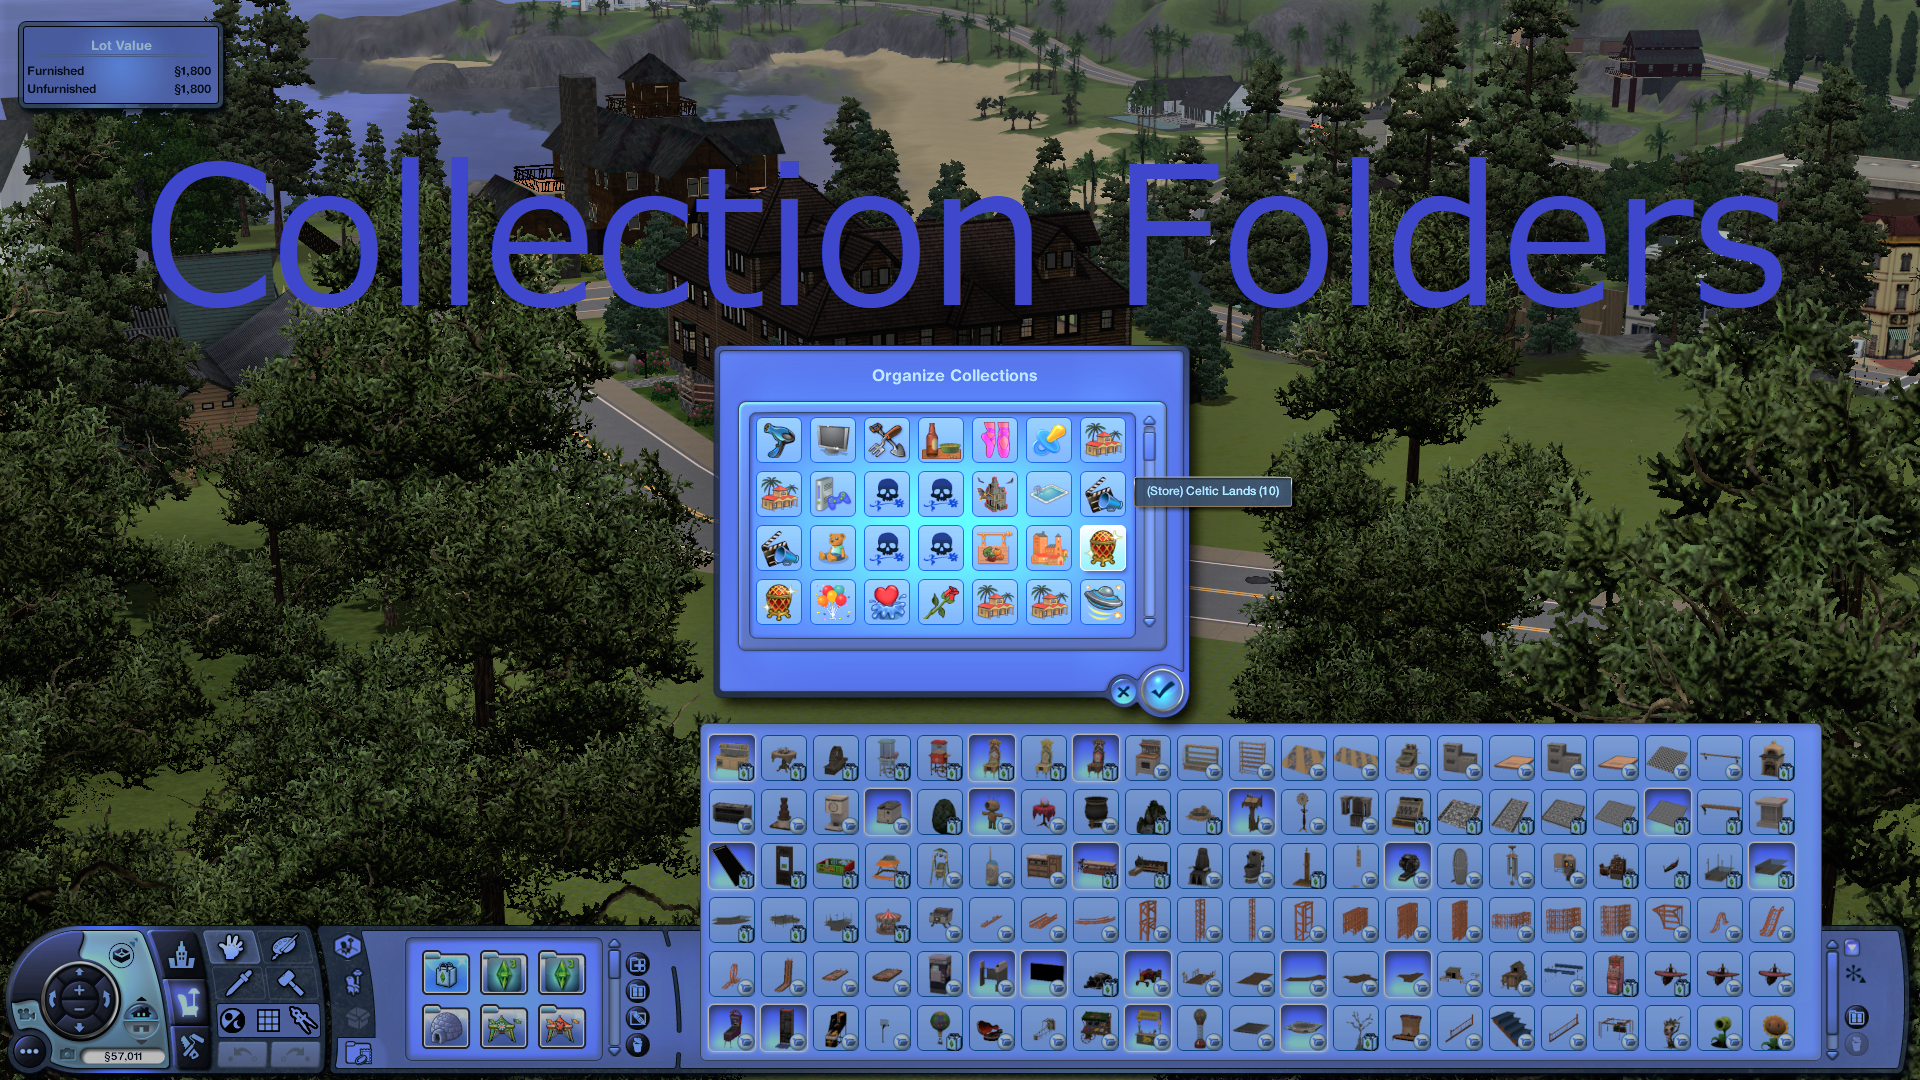 Mod The Sims Collection Folder Files For Decrapified Store Sets Store Contemporary Sims 3 Mods Sims